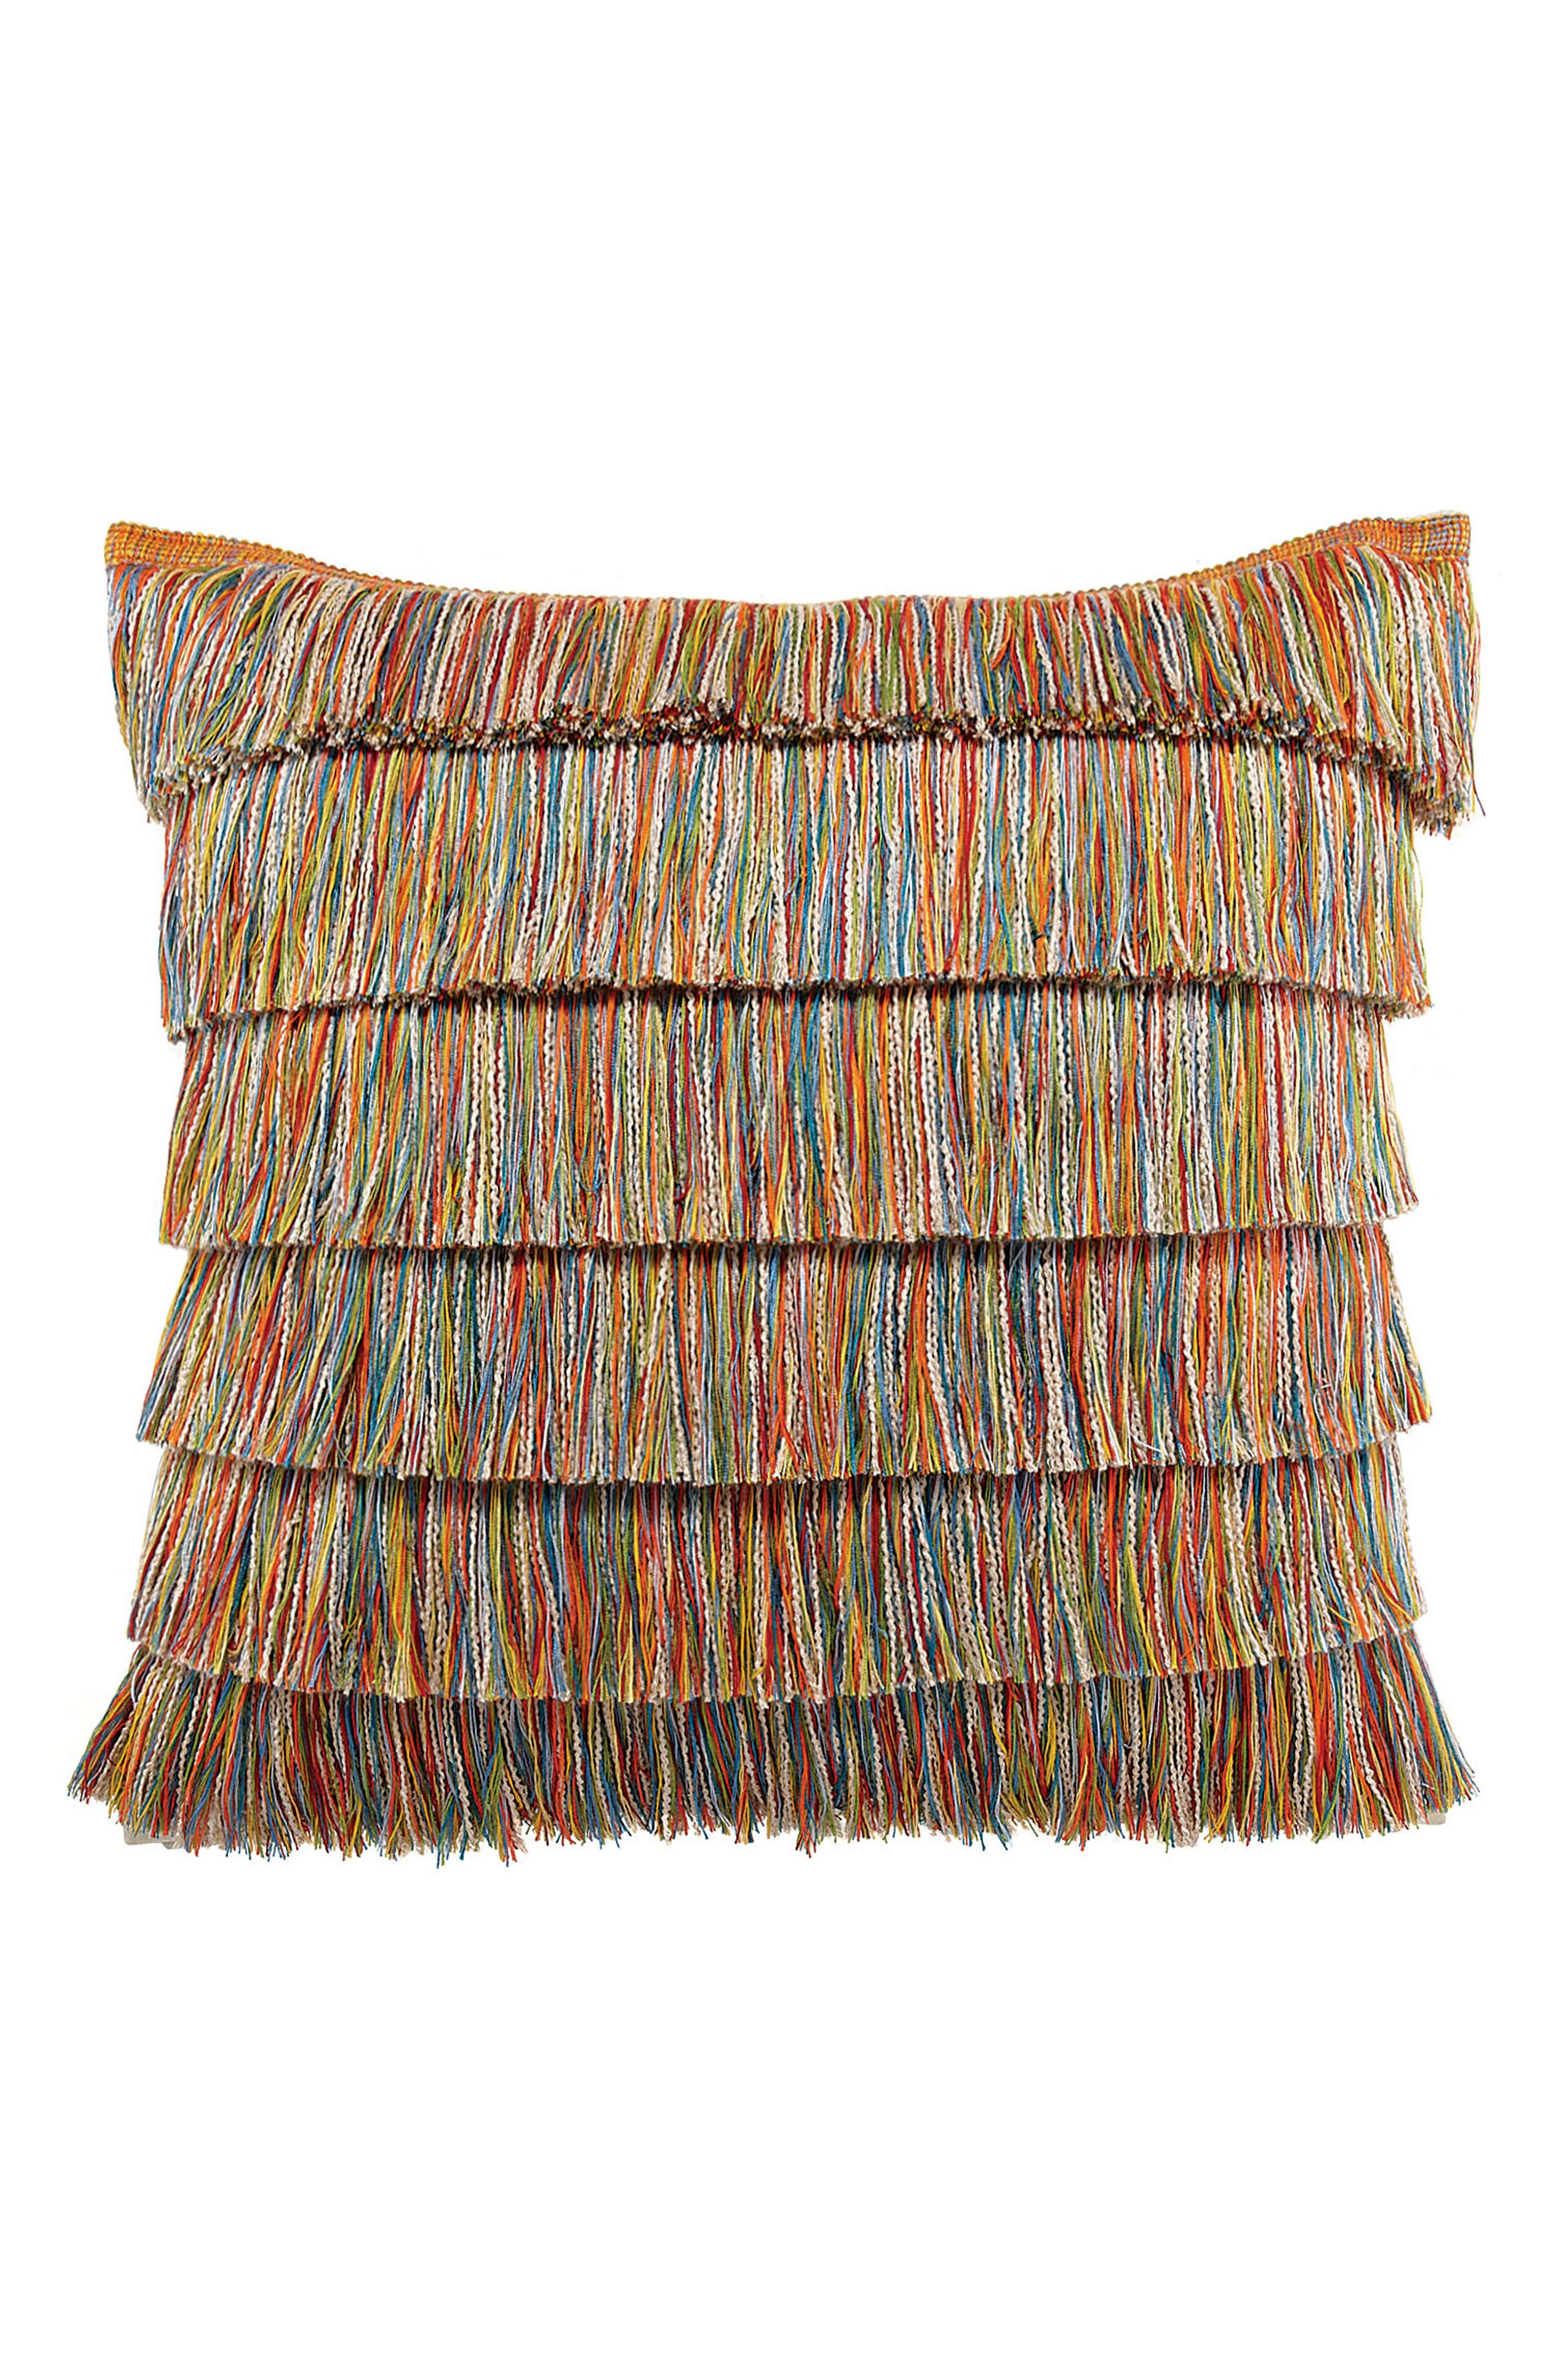 Main Image - Elaine Smith Hula Indoor/Outdoor Accent Pillow